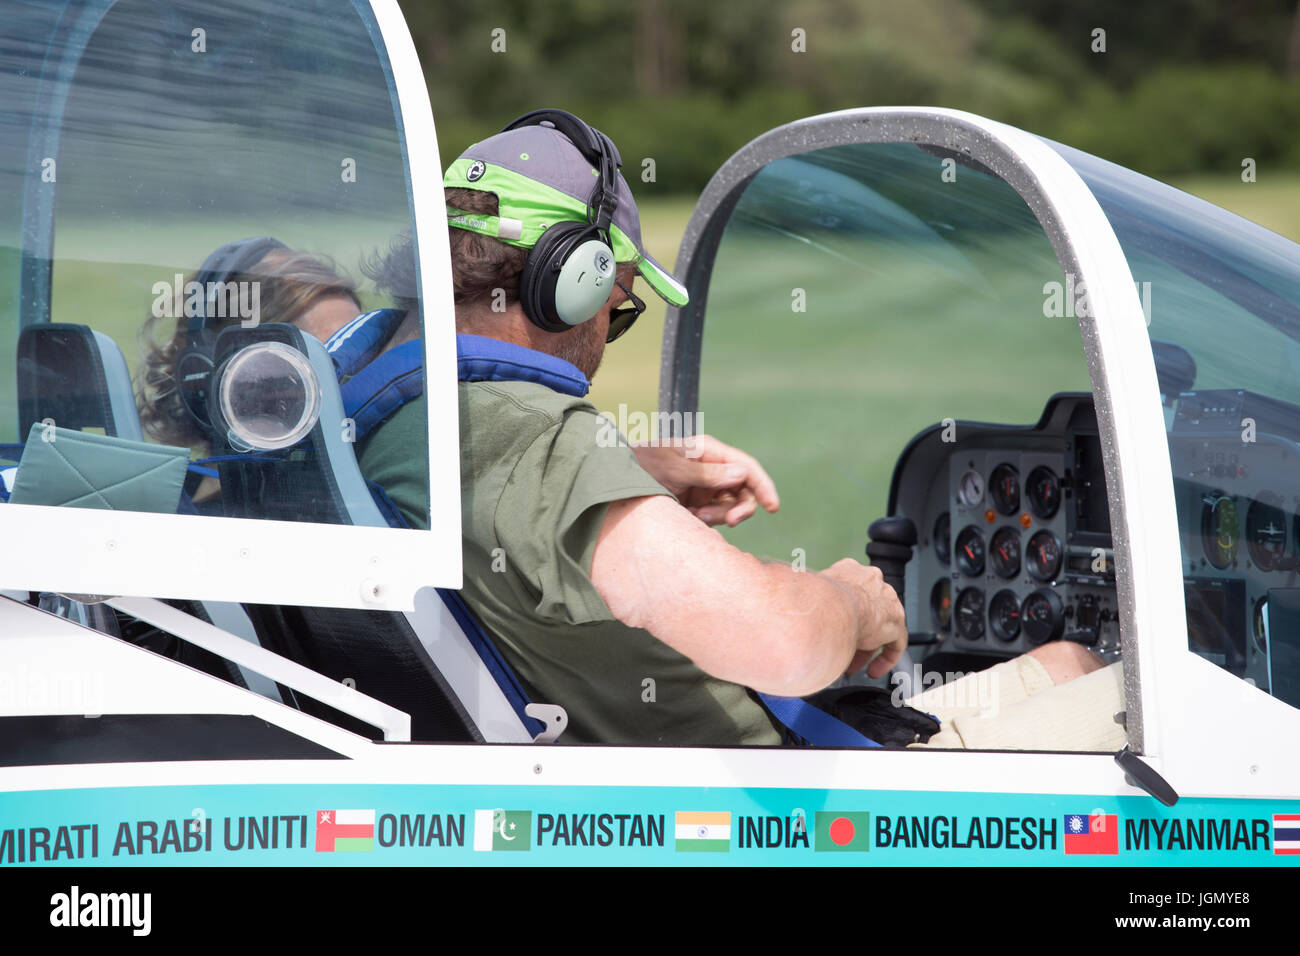 Pilot of the Texan Top Class touristic airplane preparing to fly. Stock Photo